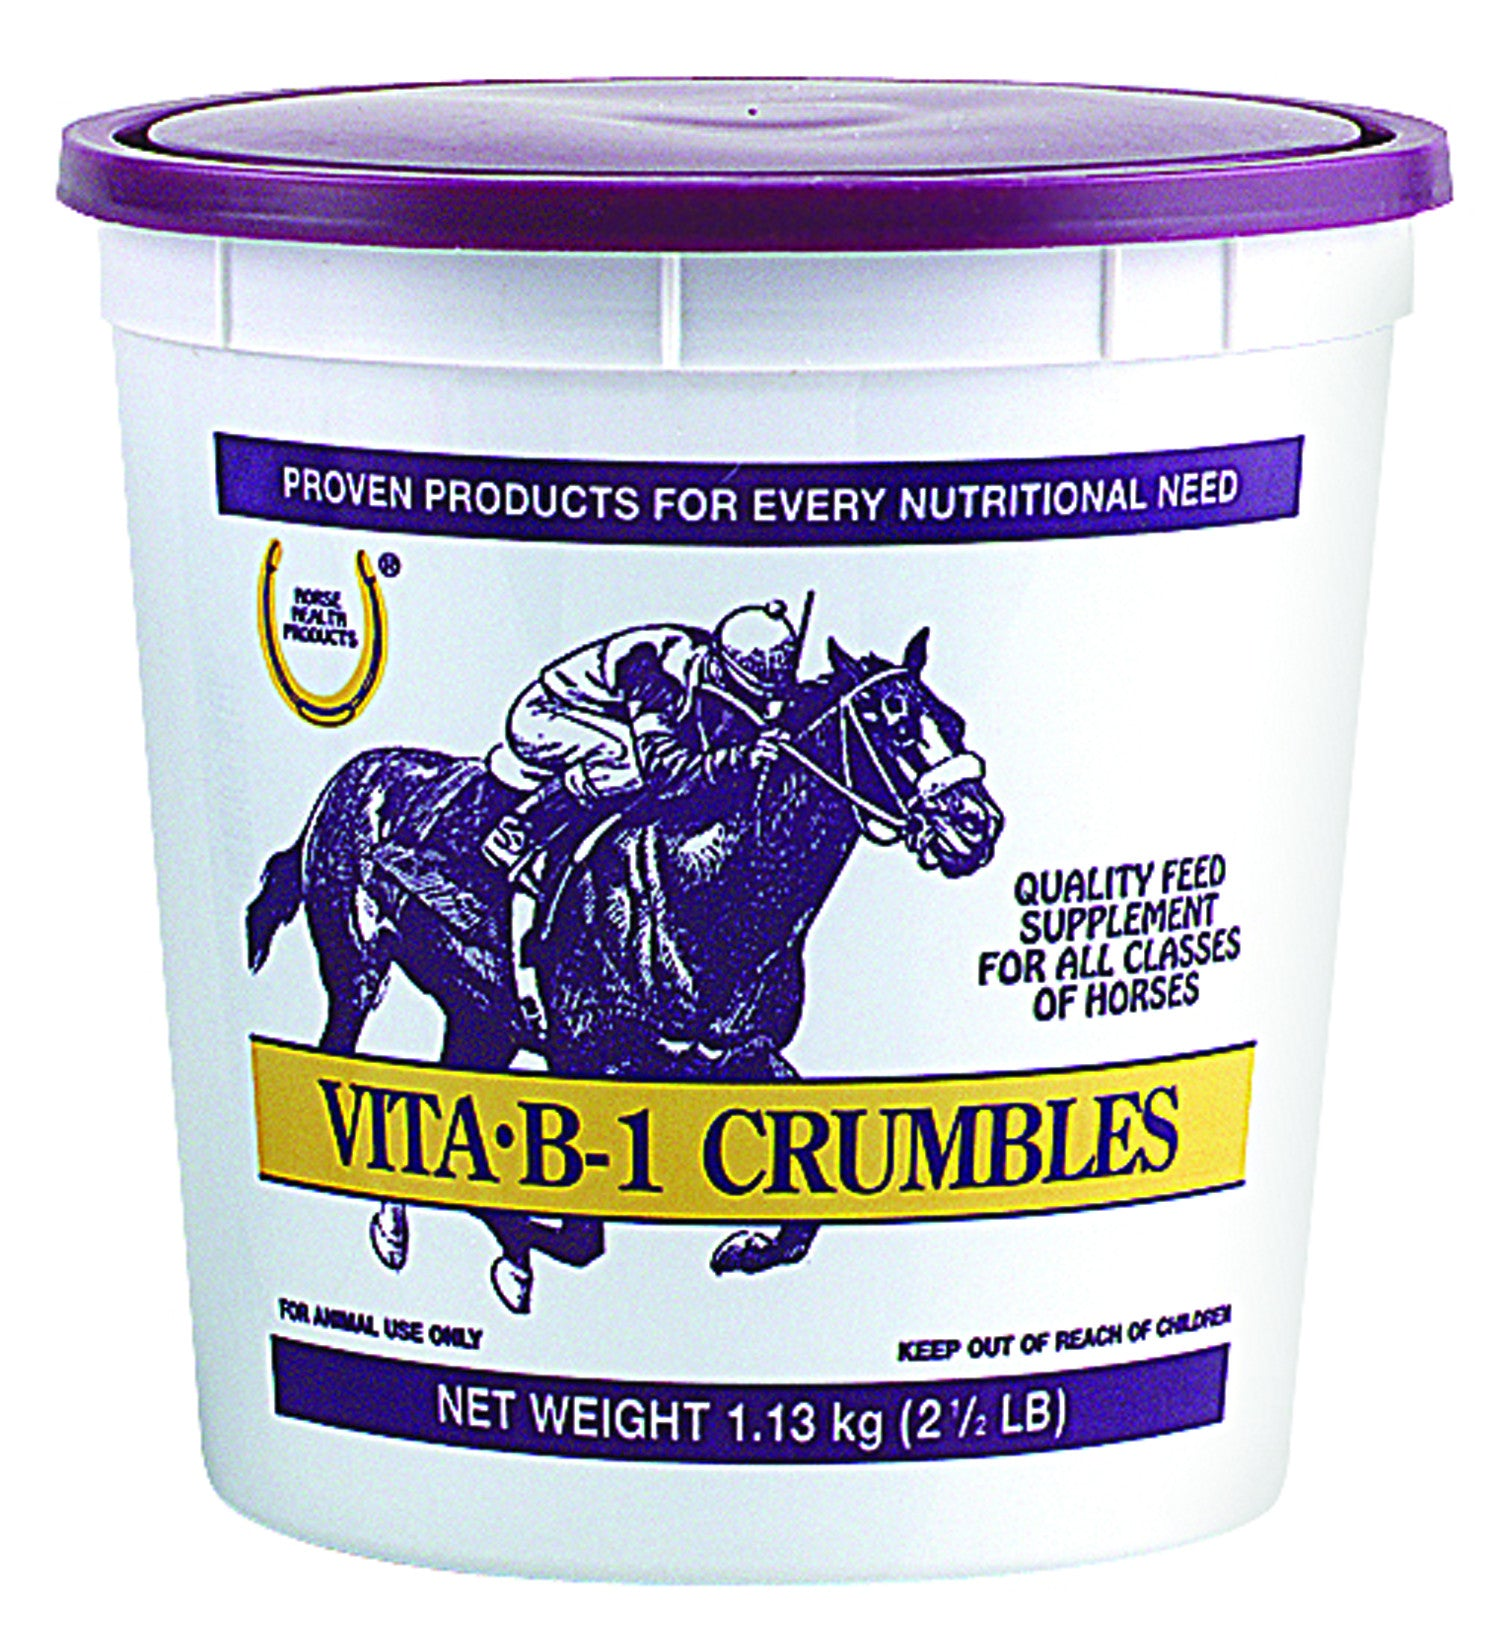 Vita B-1 Crumble Feed Supplement For Horses